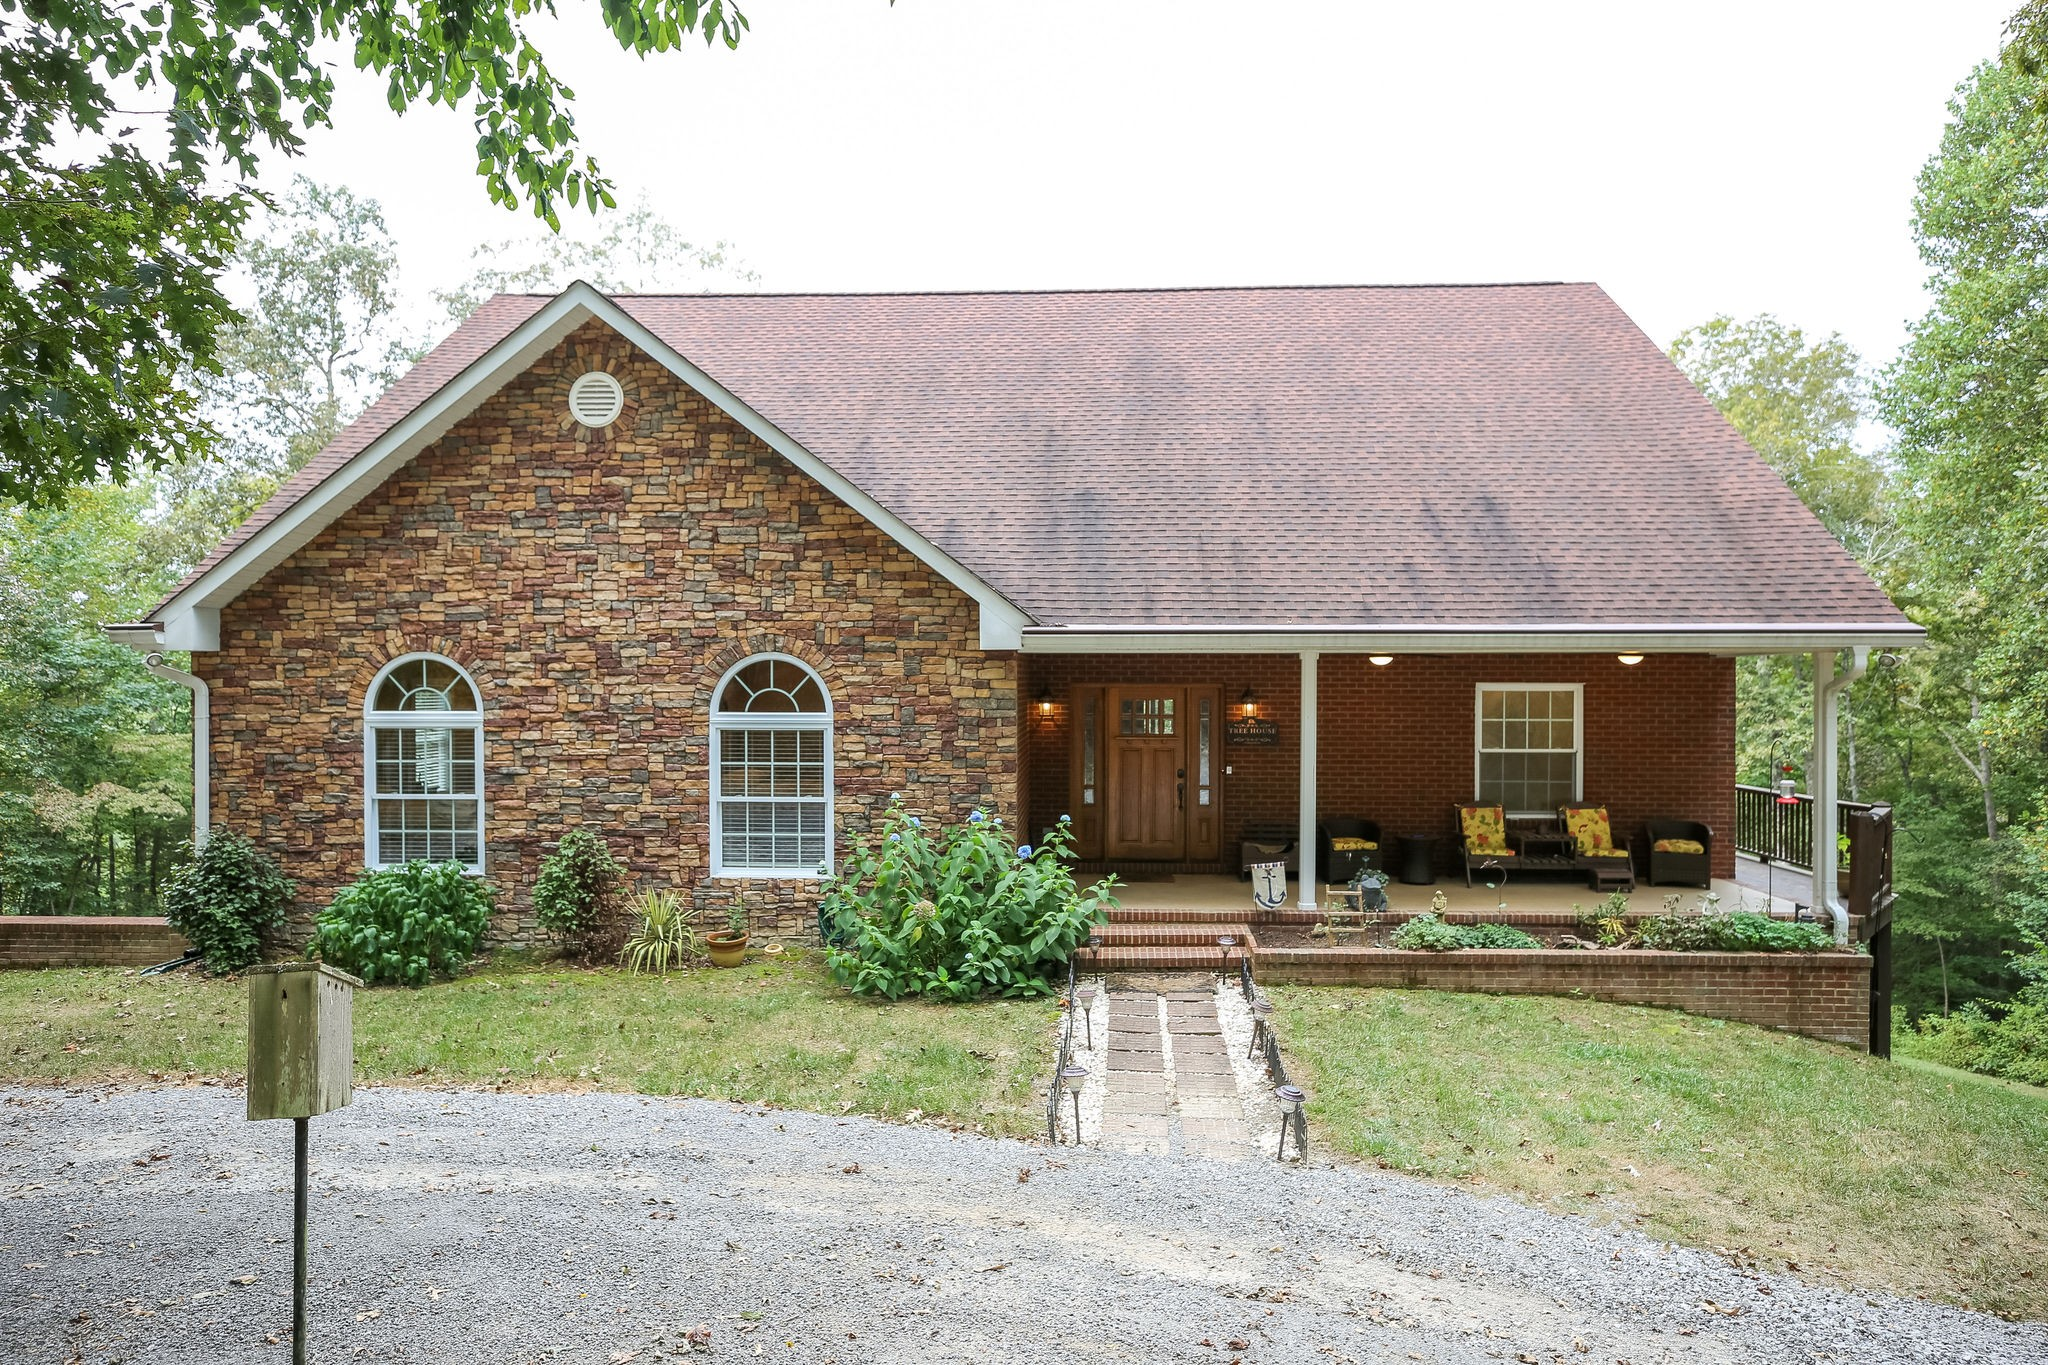 5100 Jefferson Rd, Smithville, TN 37166 - Smithville, TN real estate listing